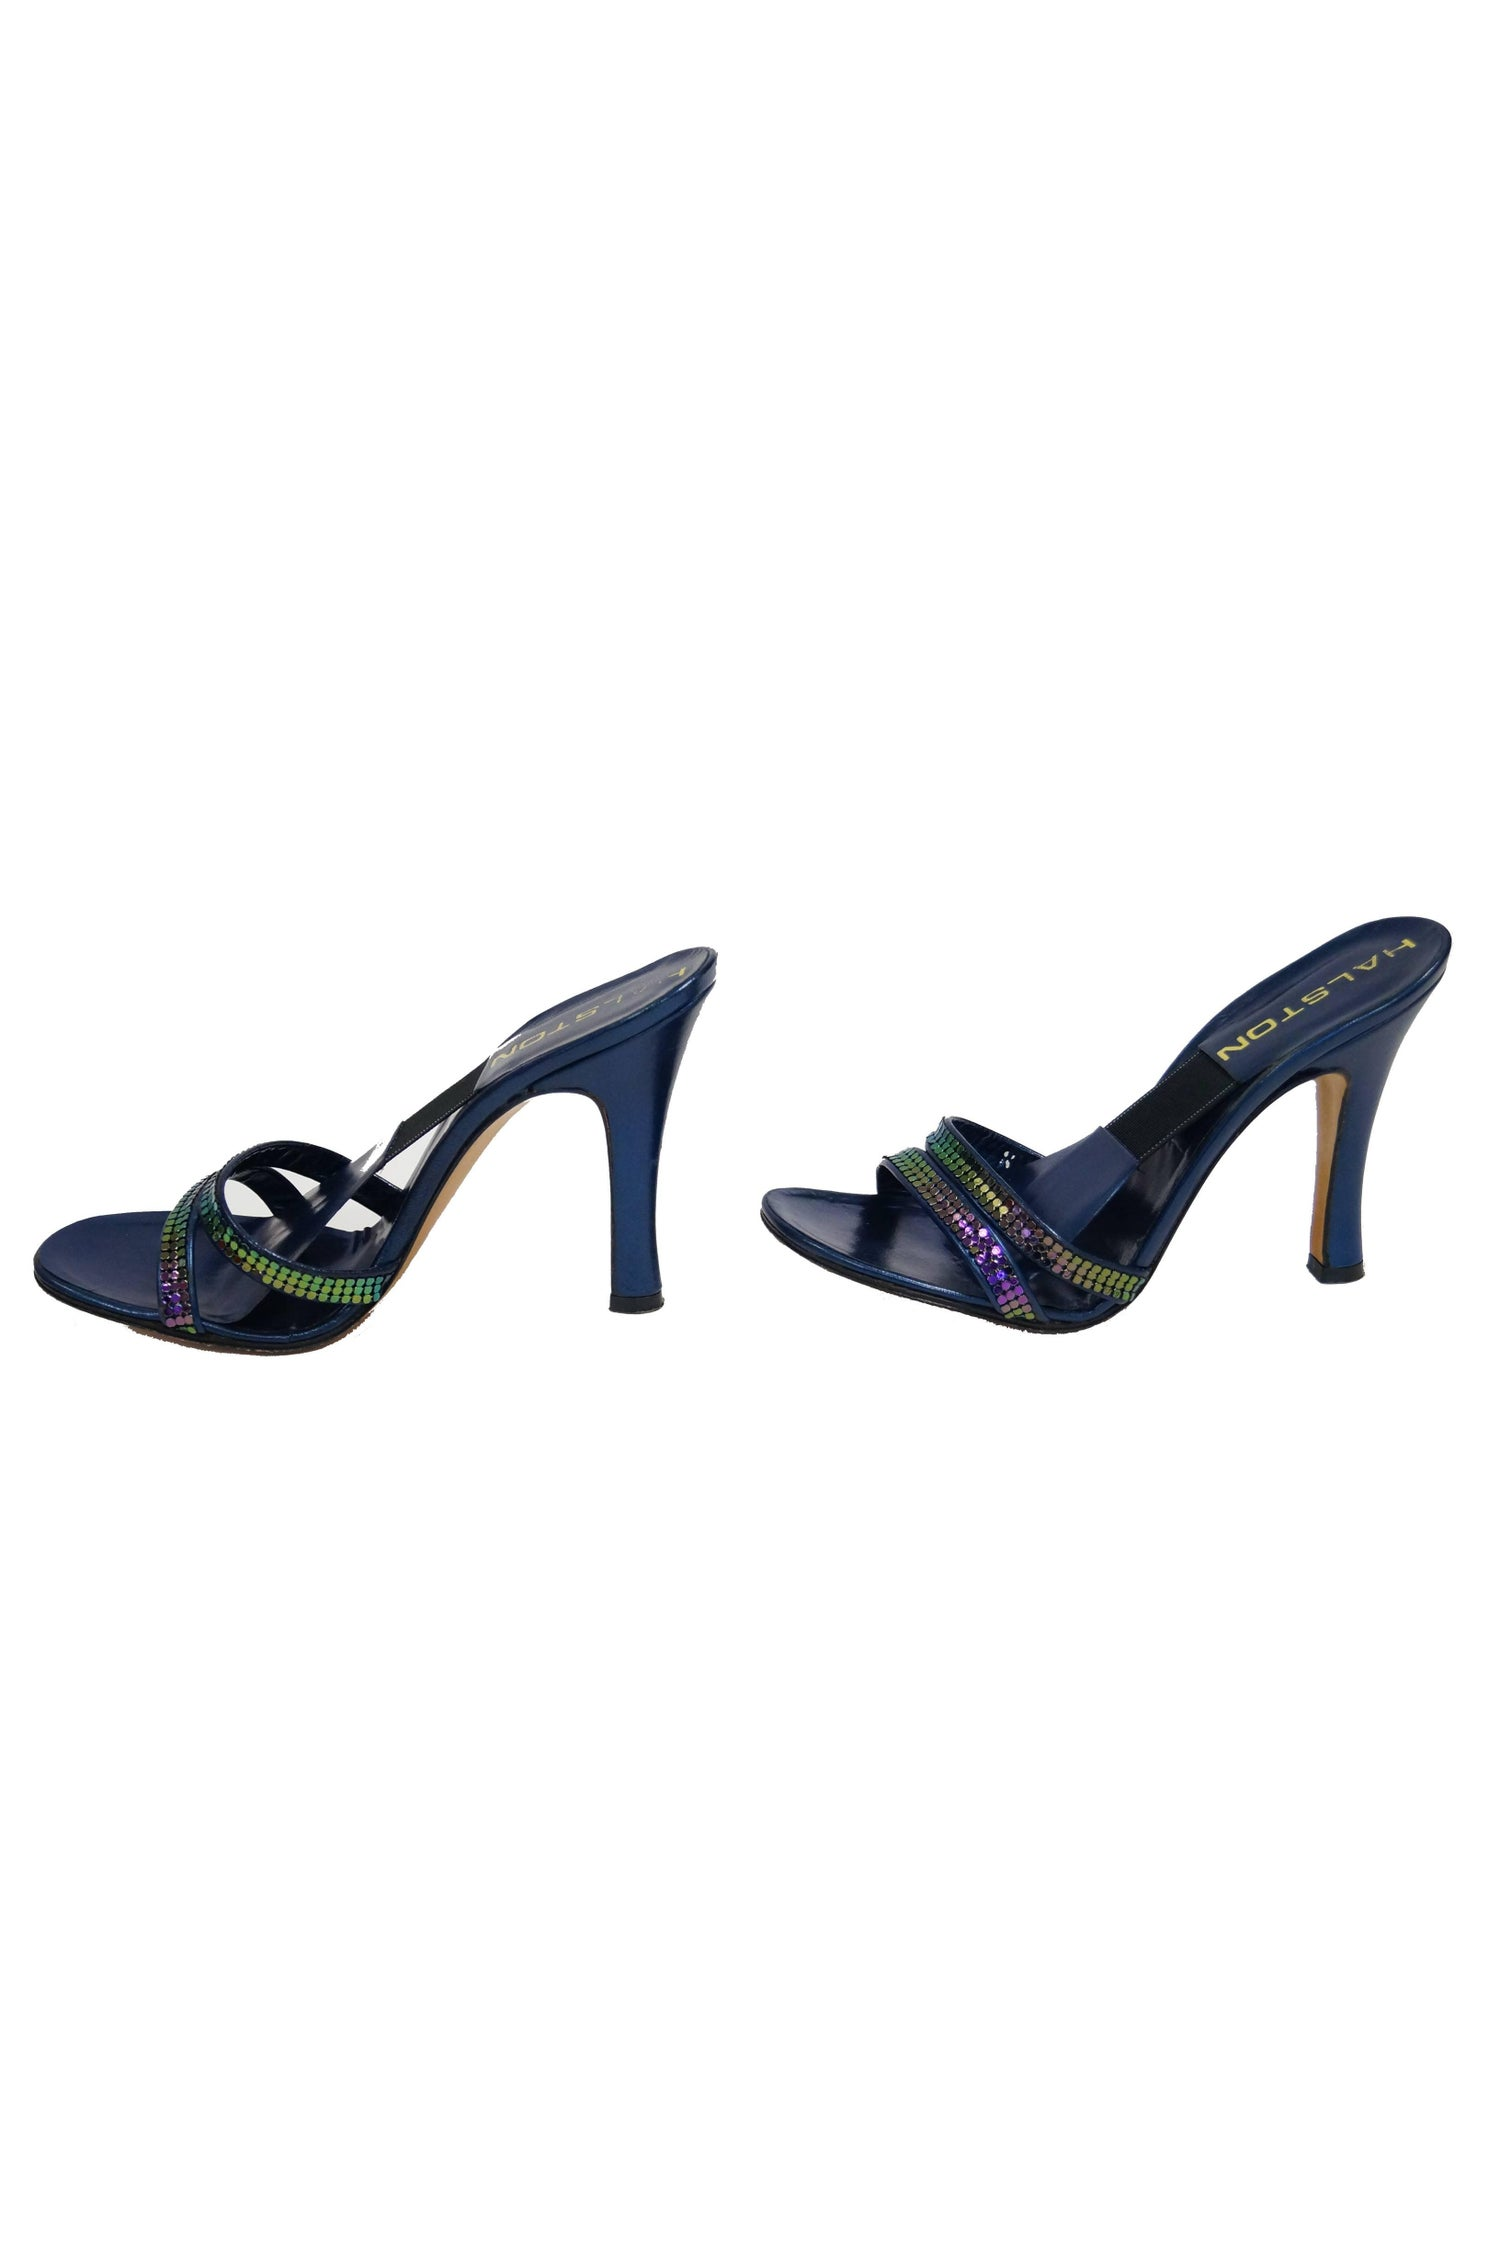 82c079d55f70 Iconic 1970s Halston Navy with Iridescent Mesh Strap Accent Heel For Sale  at 1stdibs